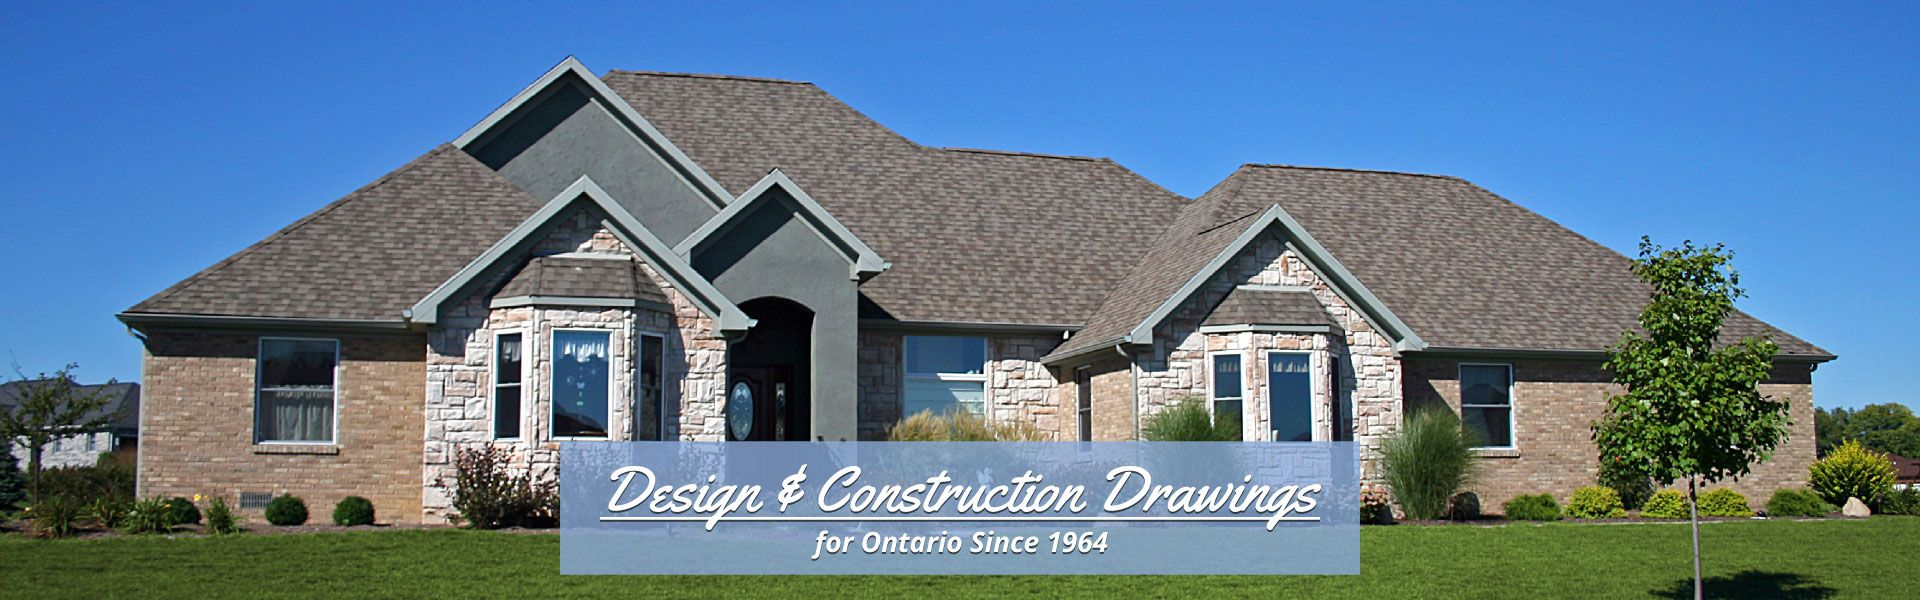 Design & Construction Drawings for Ontario Since 1964 | Nice Home